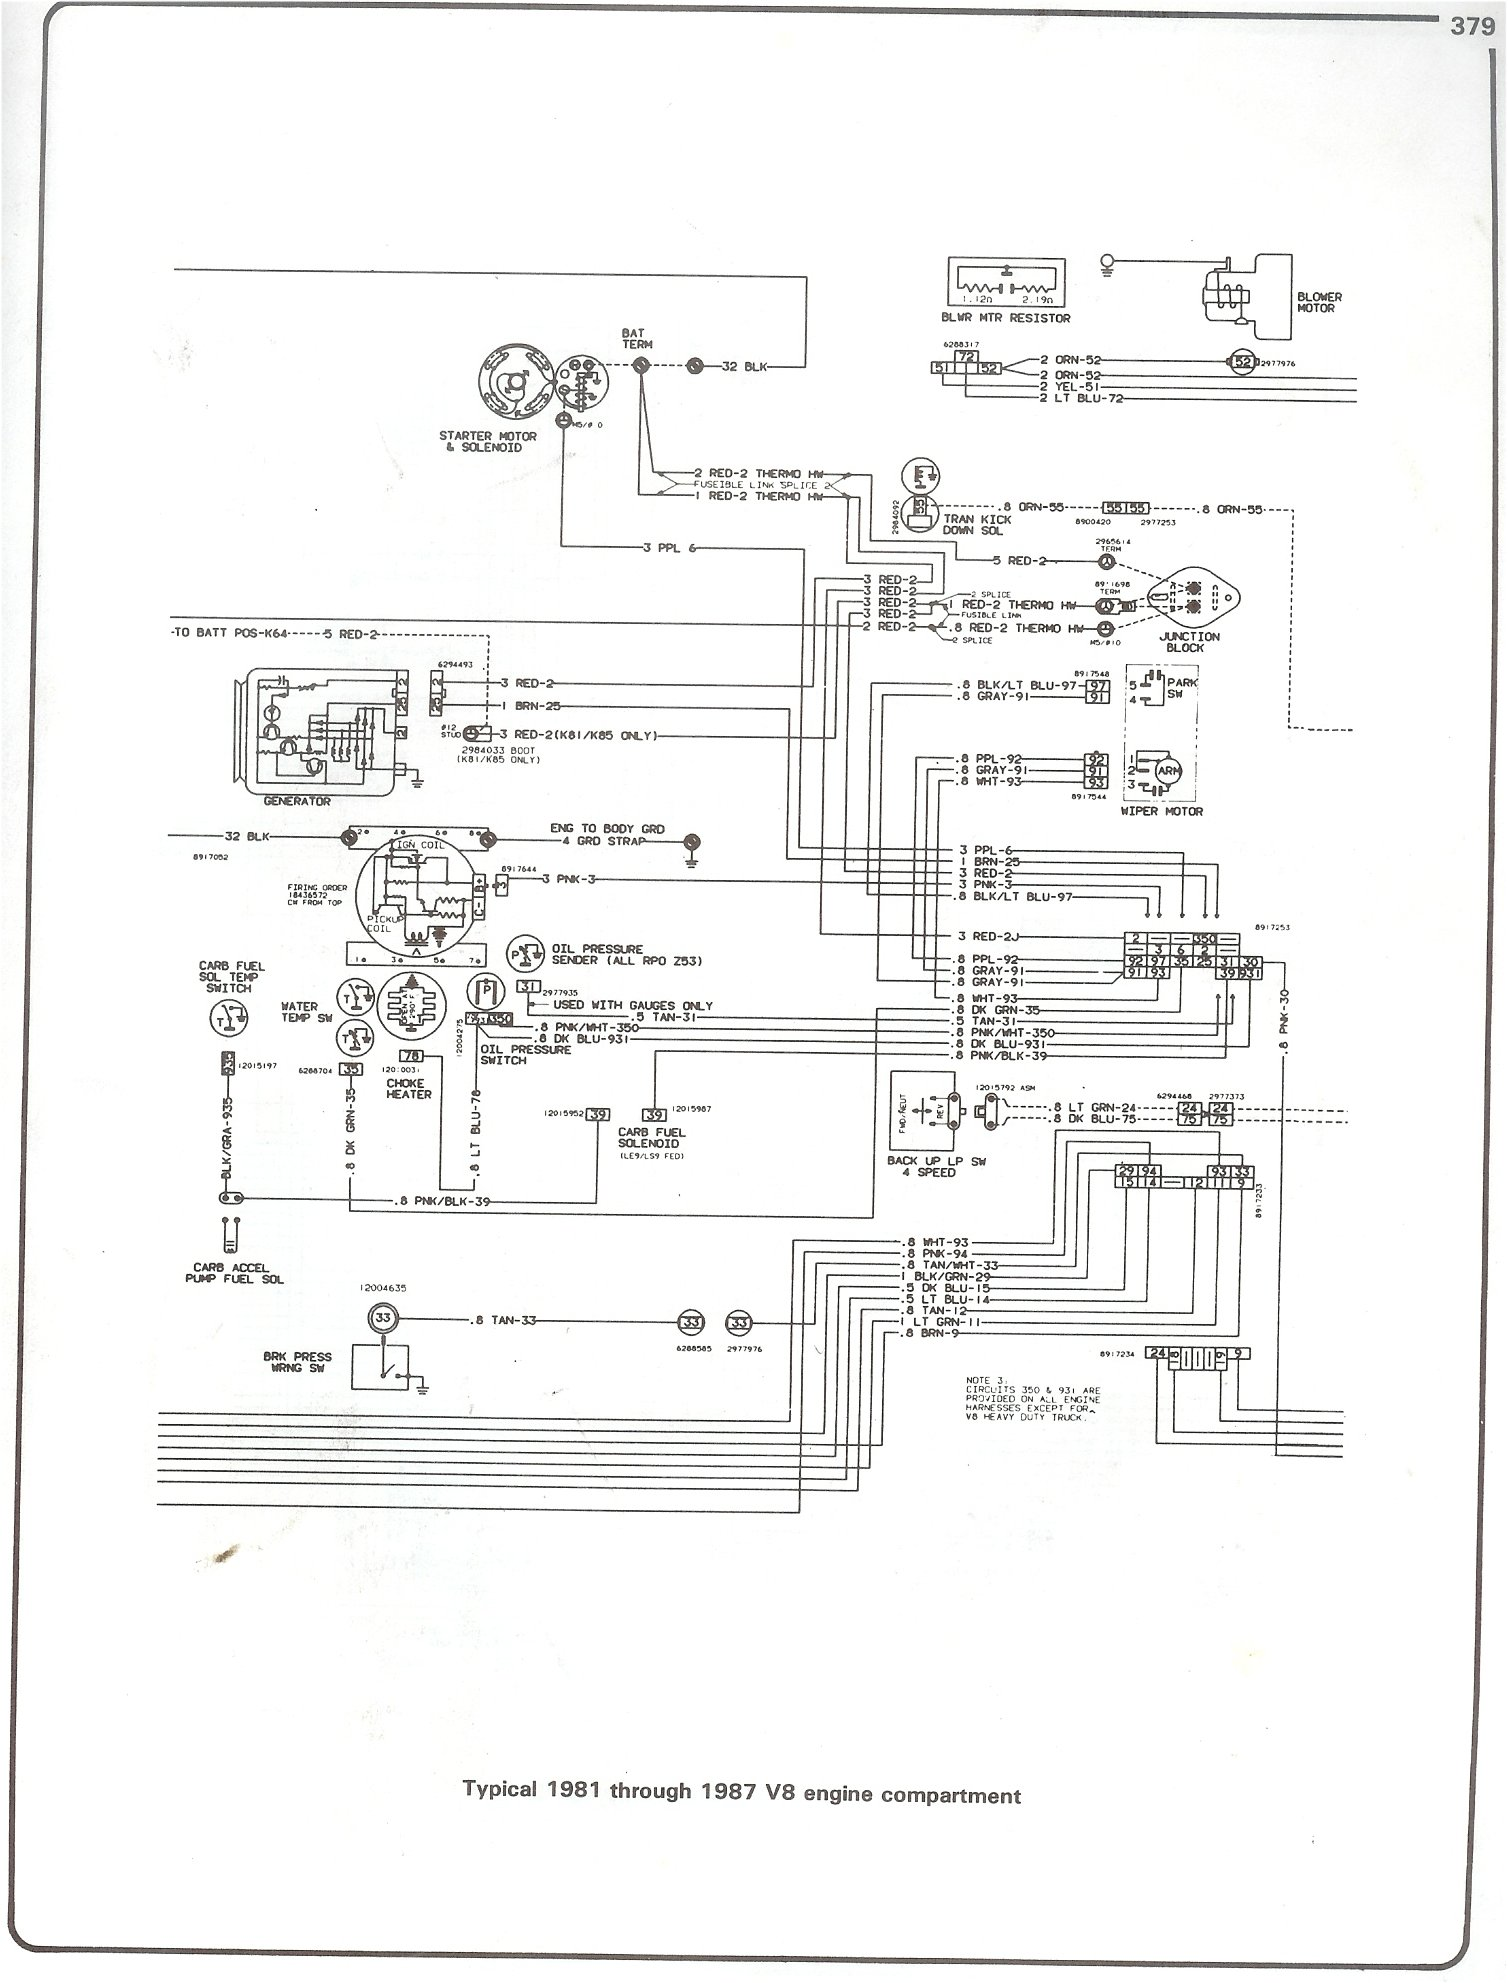 Chevrolet Ac Wiring Diagrams Reinvent Your Diagram Outside Fuse Box 1997 Jeep Wrangler Complete 73 87 Rh Forum 87chevytrucks Com Unit House